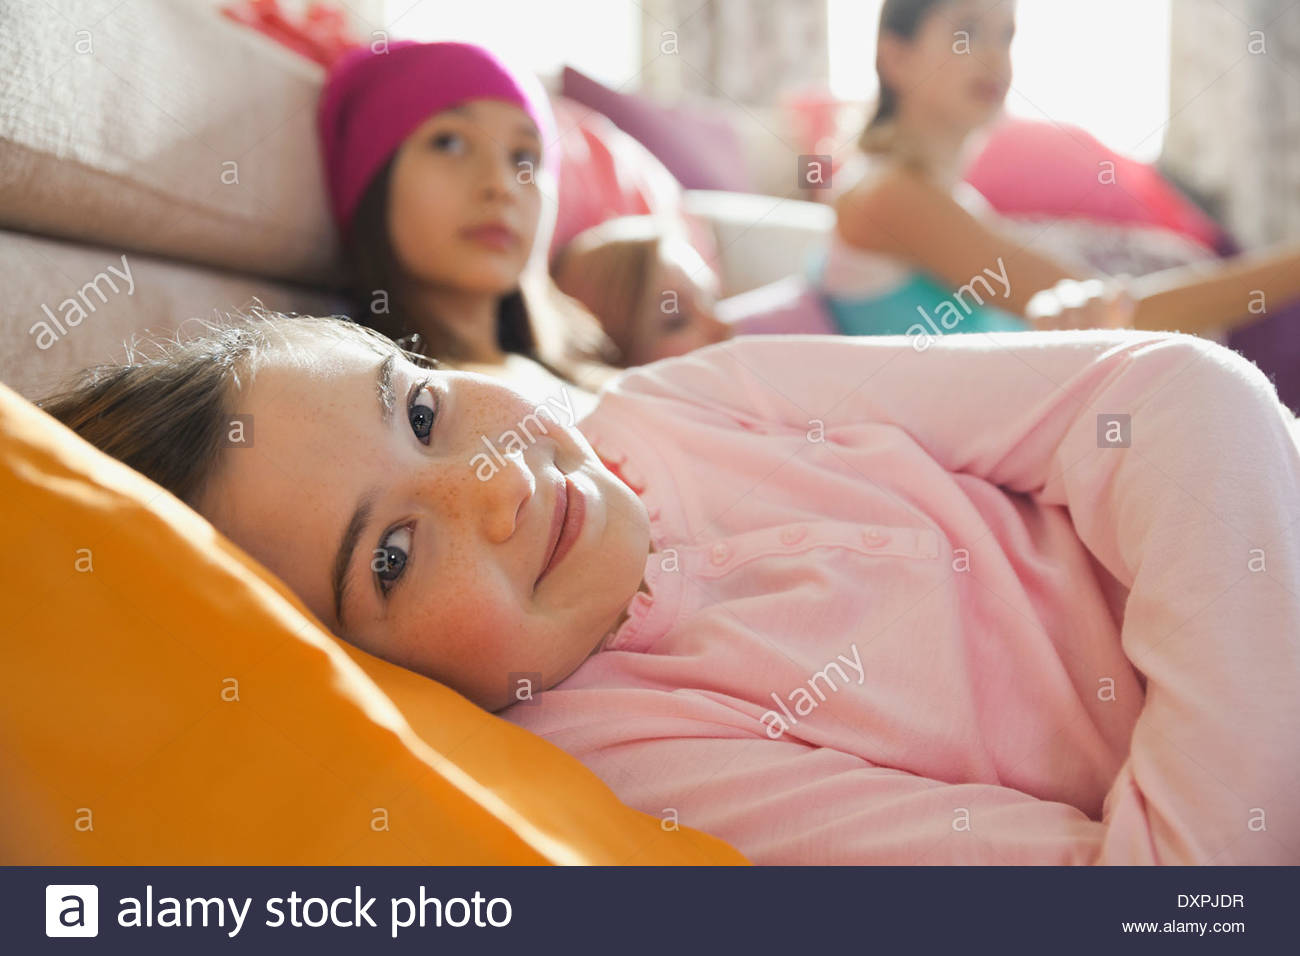 Girls hanging out at slumber party - Stock Image